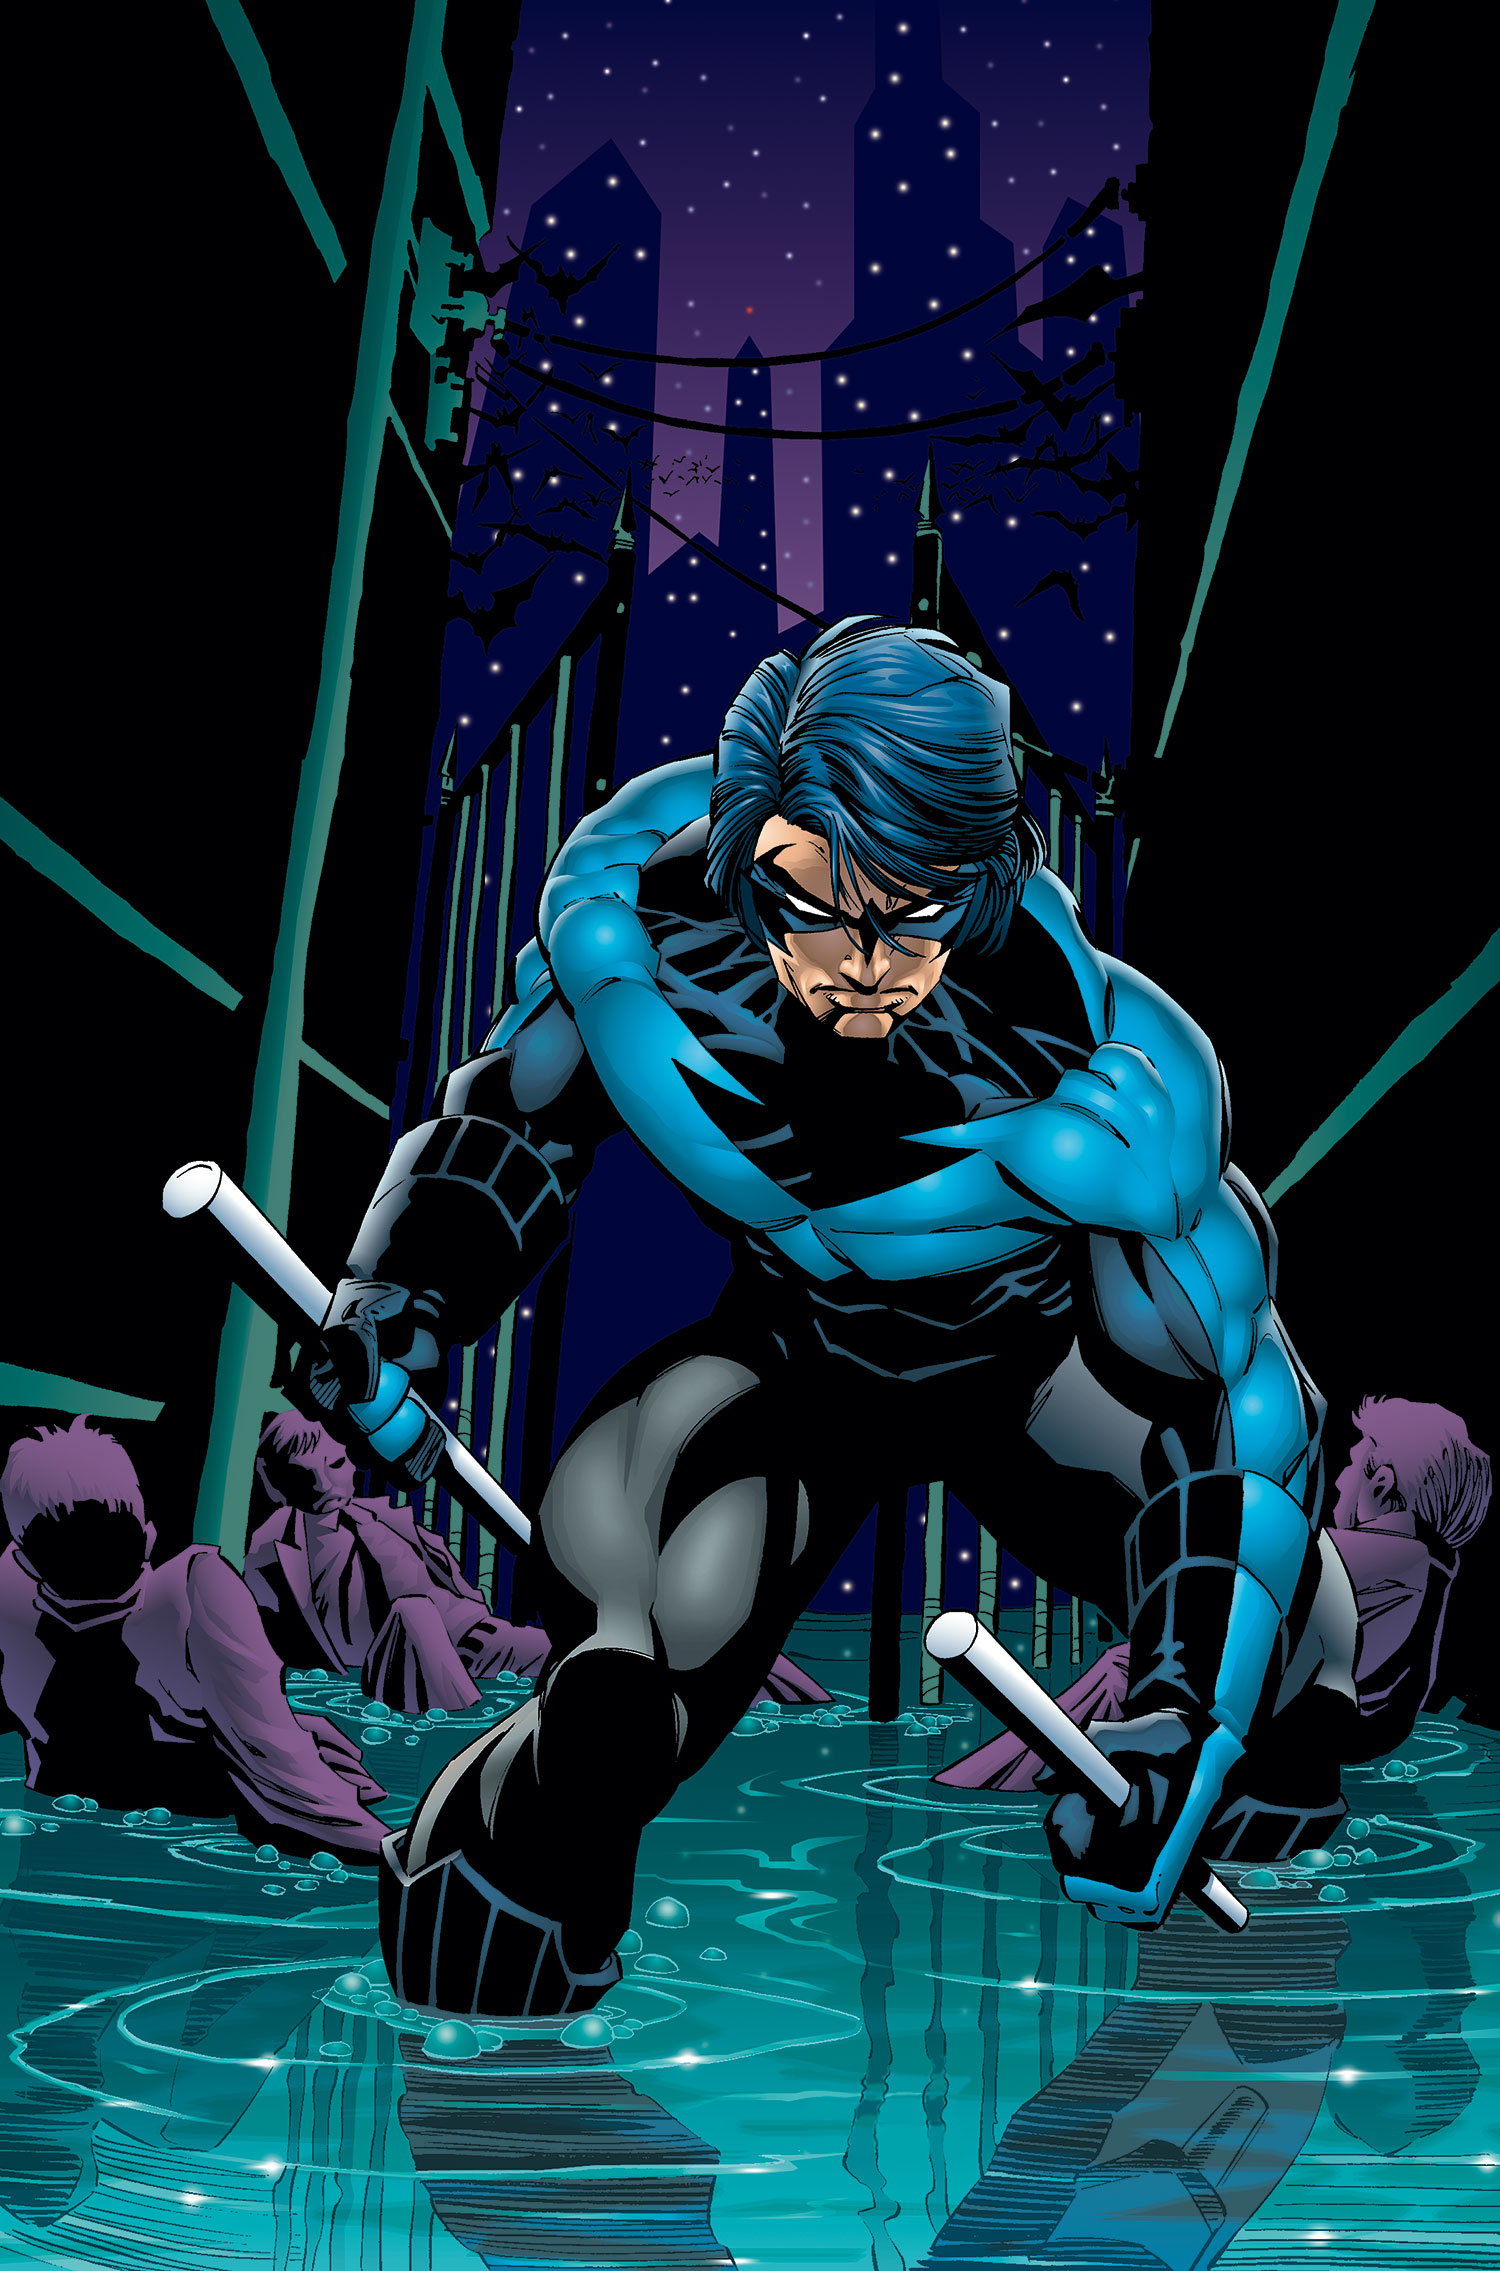 One Year Later Dick Grayson Returned To New York City His Previous Home Base With The Teen Titans In Order Find Out Who Had Been Masquerading As